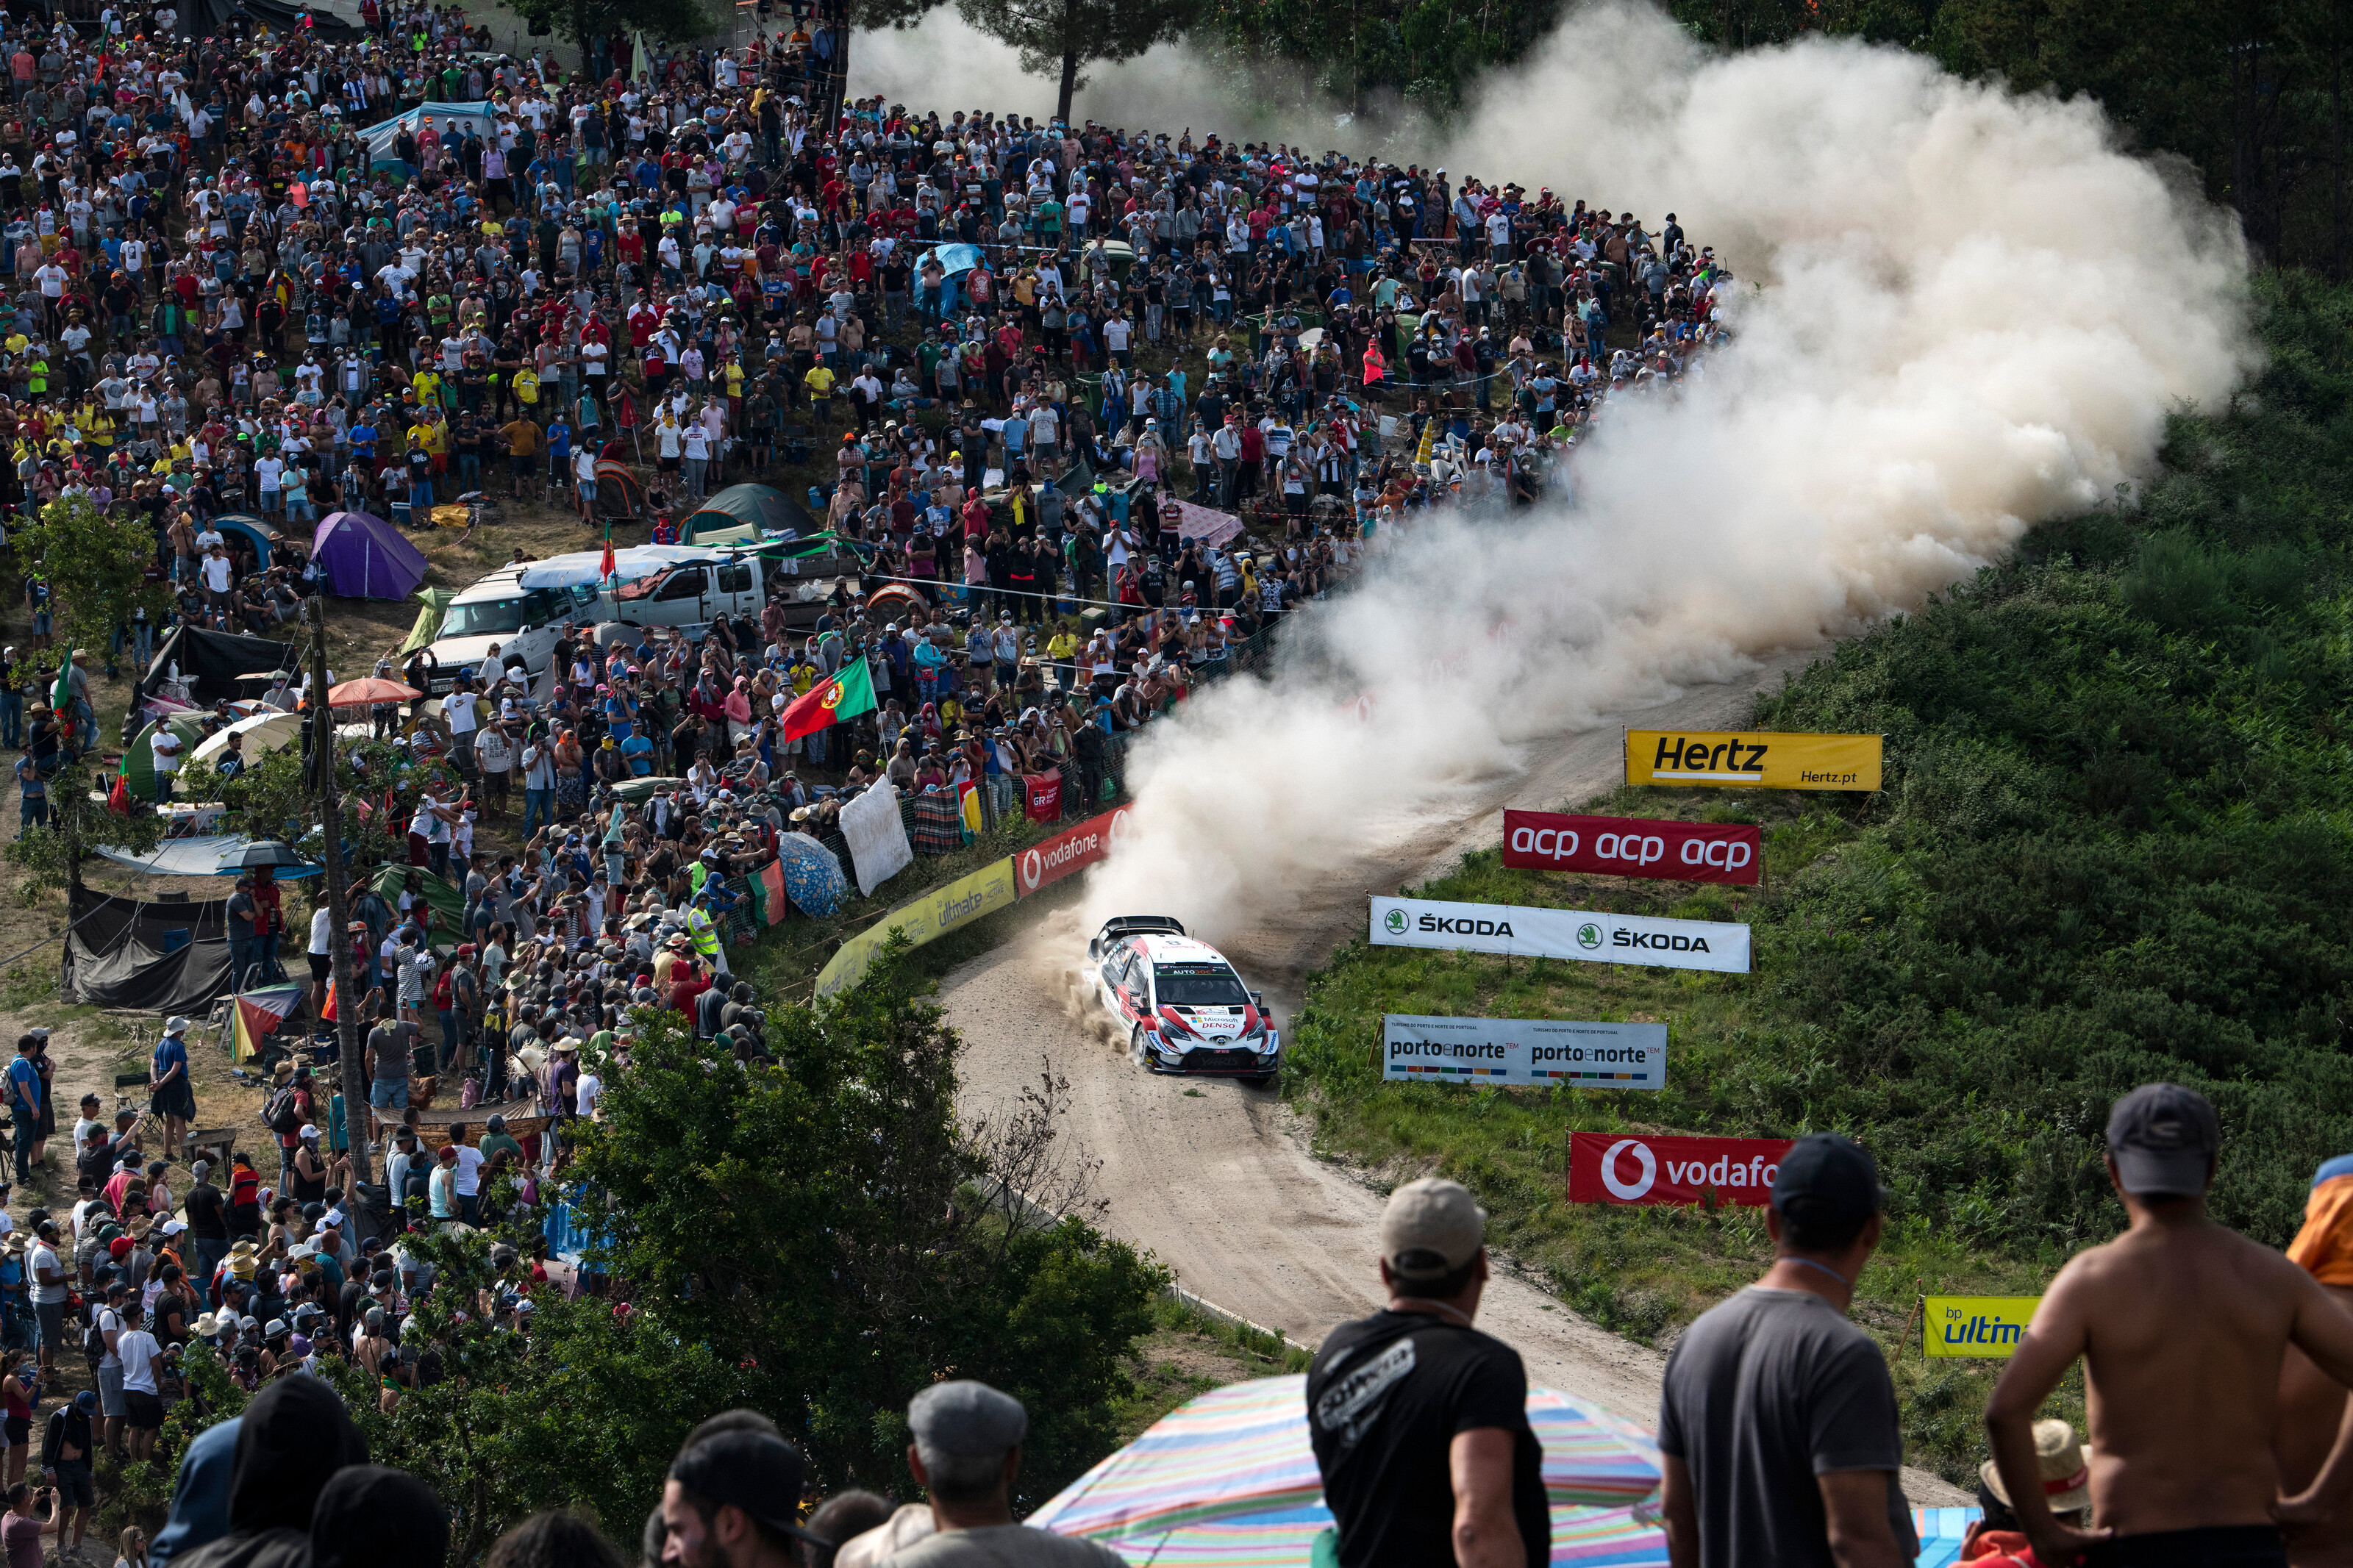 Rally Motor Credit >> Wrc Rally Portugal Back To Back Victories For Tanak Racing24 7 Net